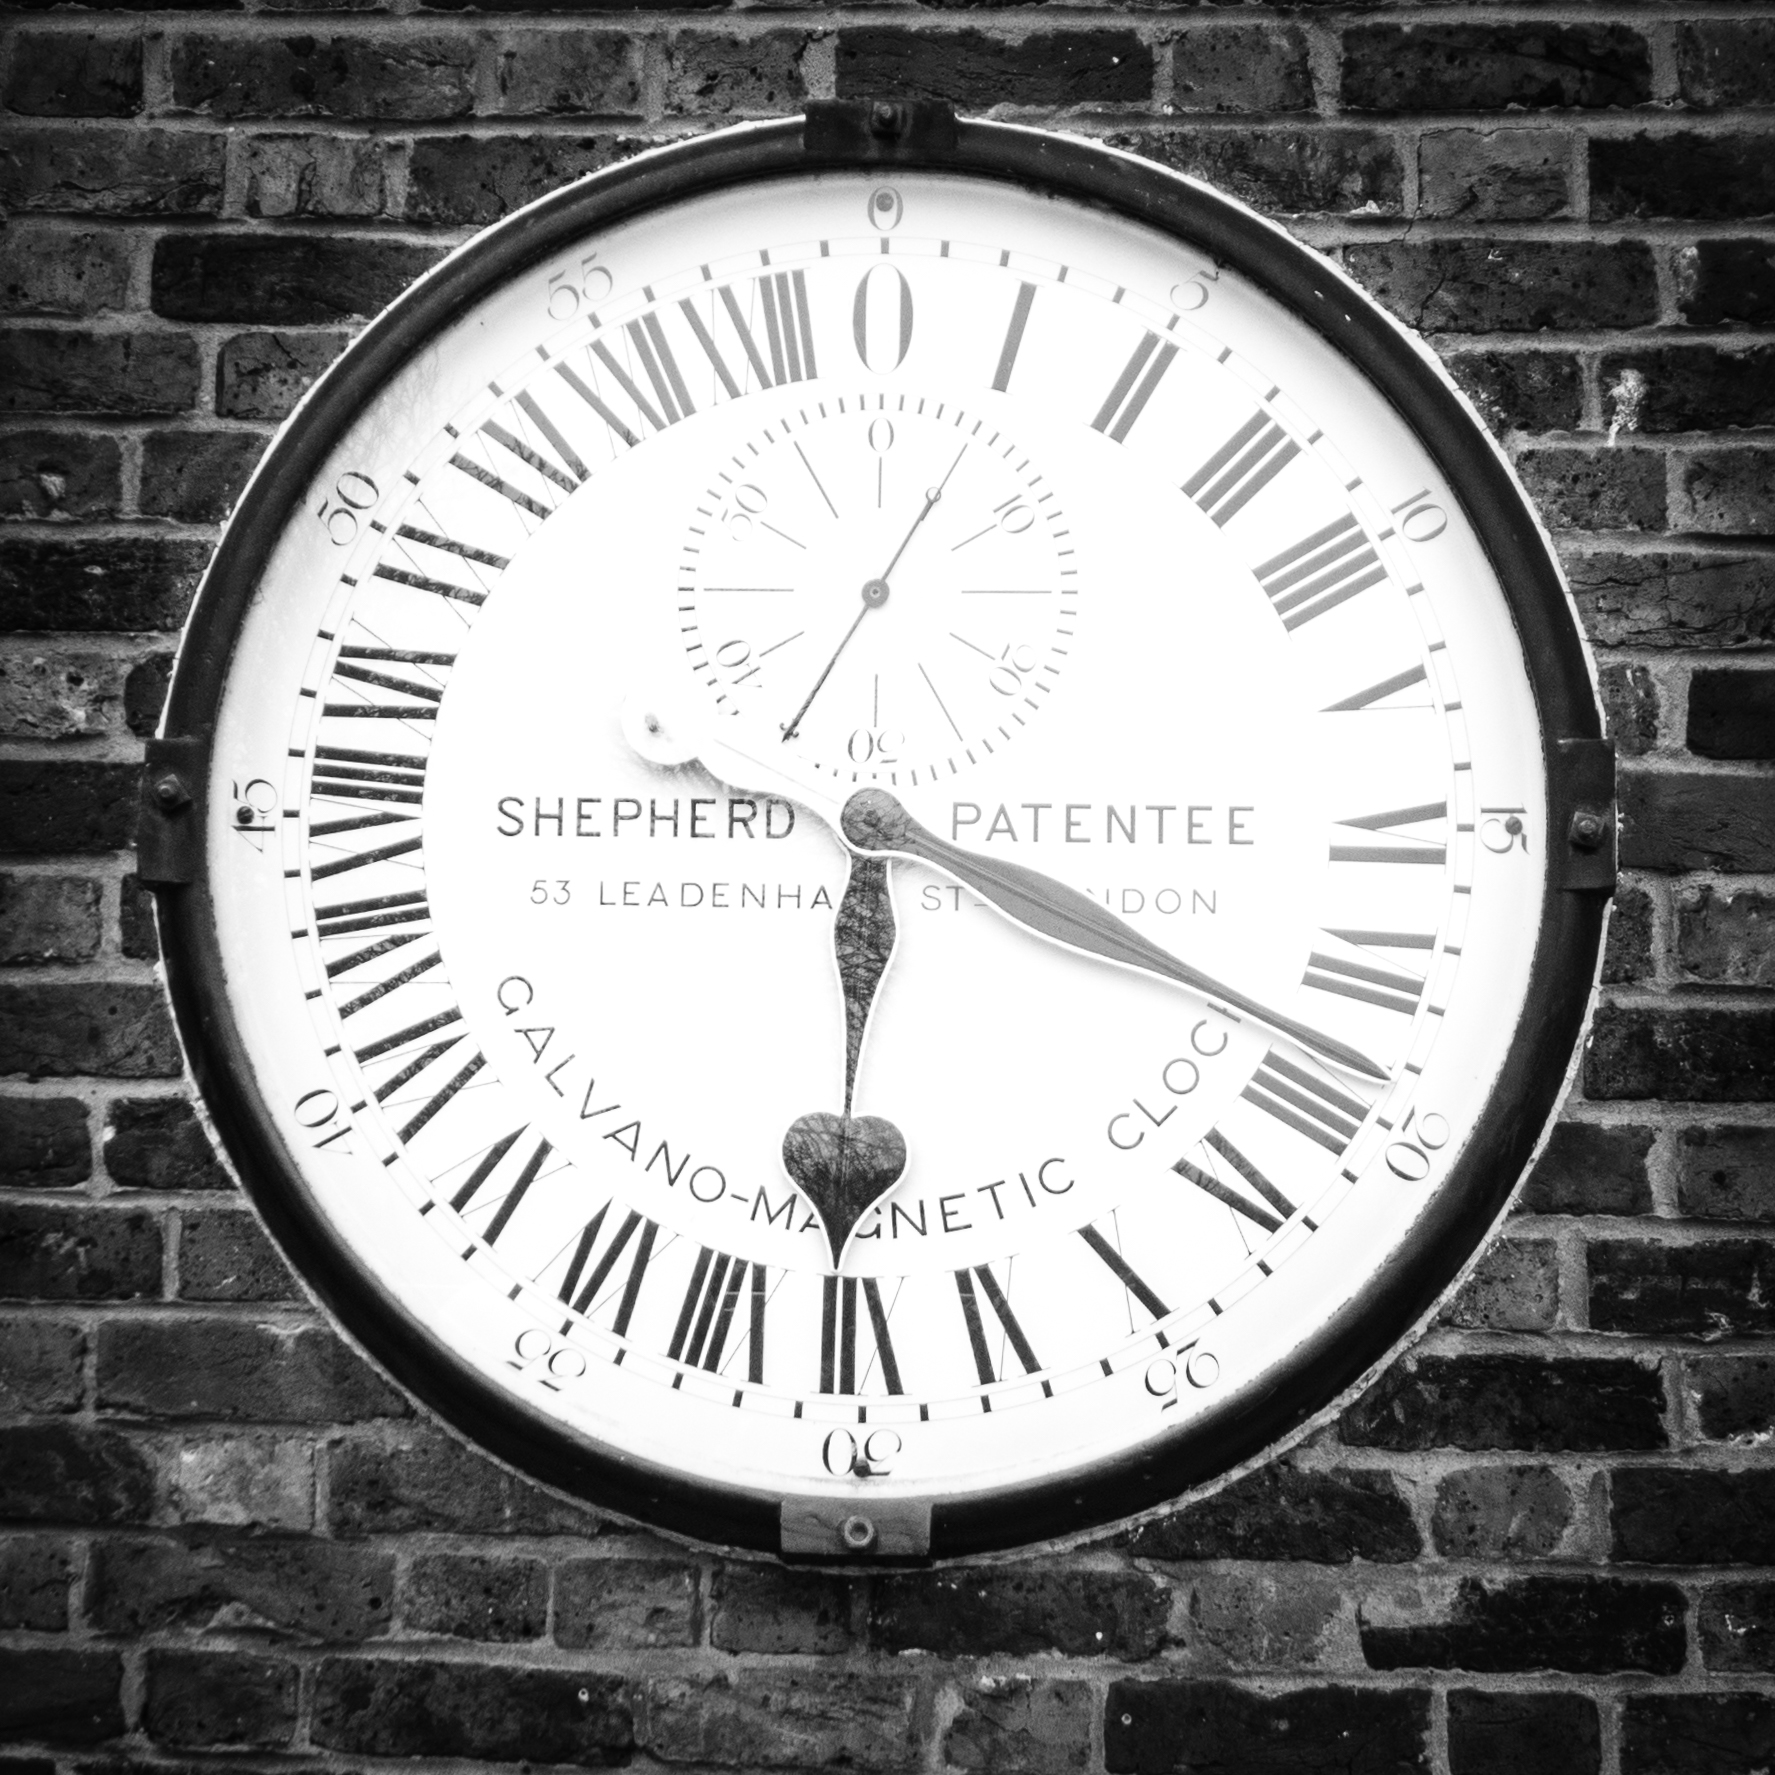 greenwich_meantime_clock.jpg